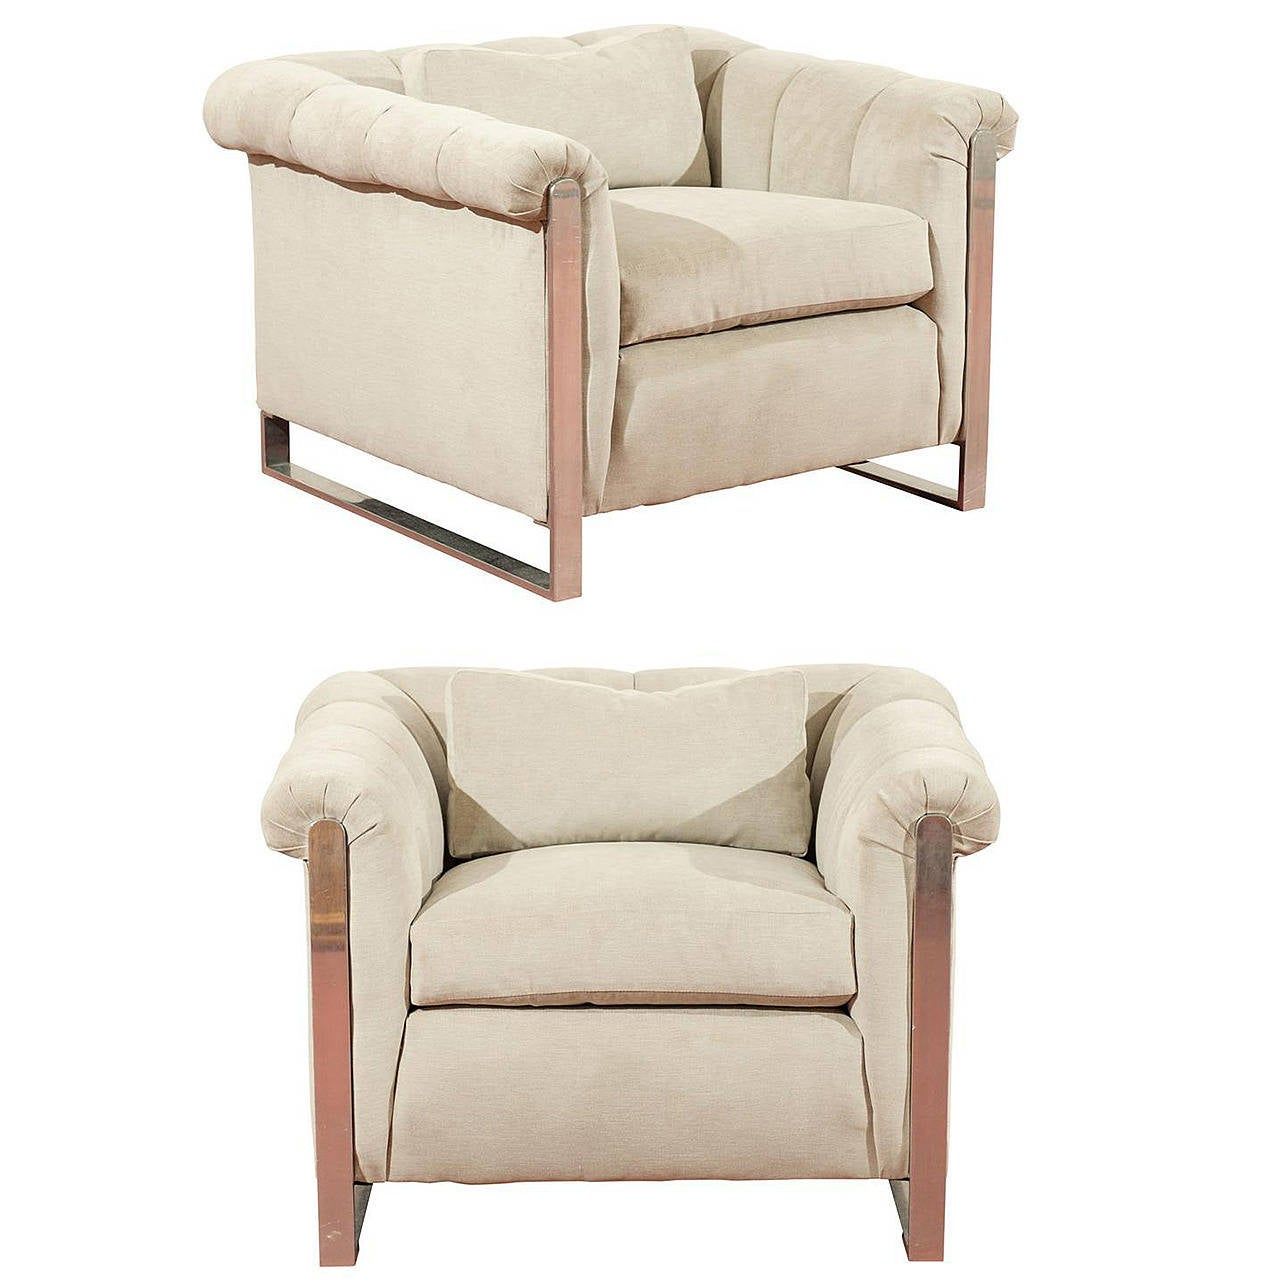 Striking Pair of Channeled Cube Lounge Chairs in the Style of Probber